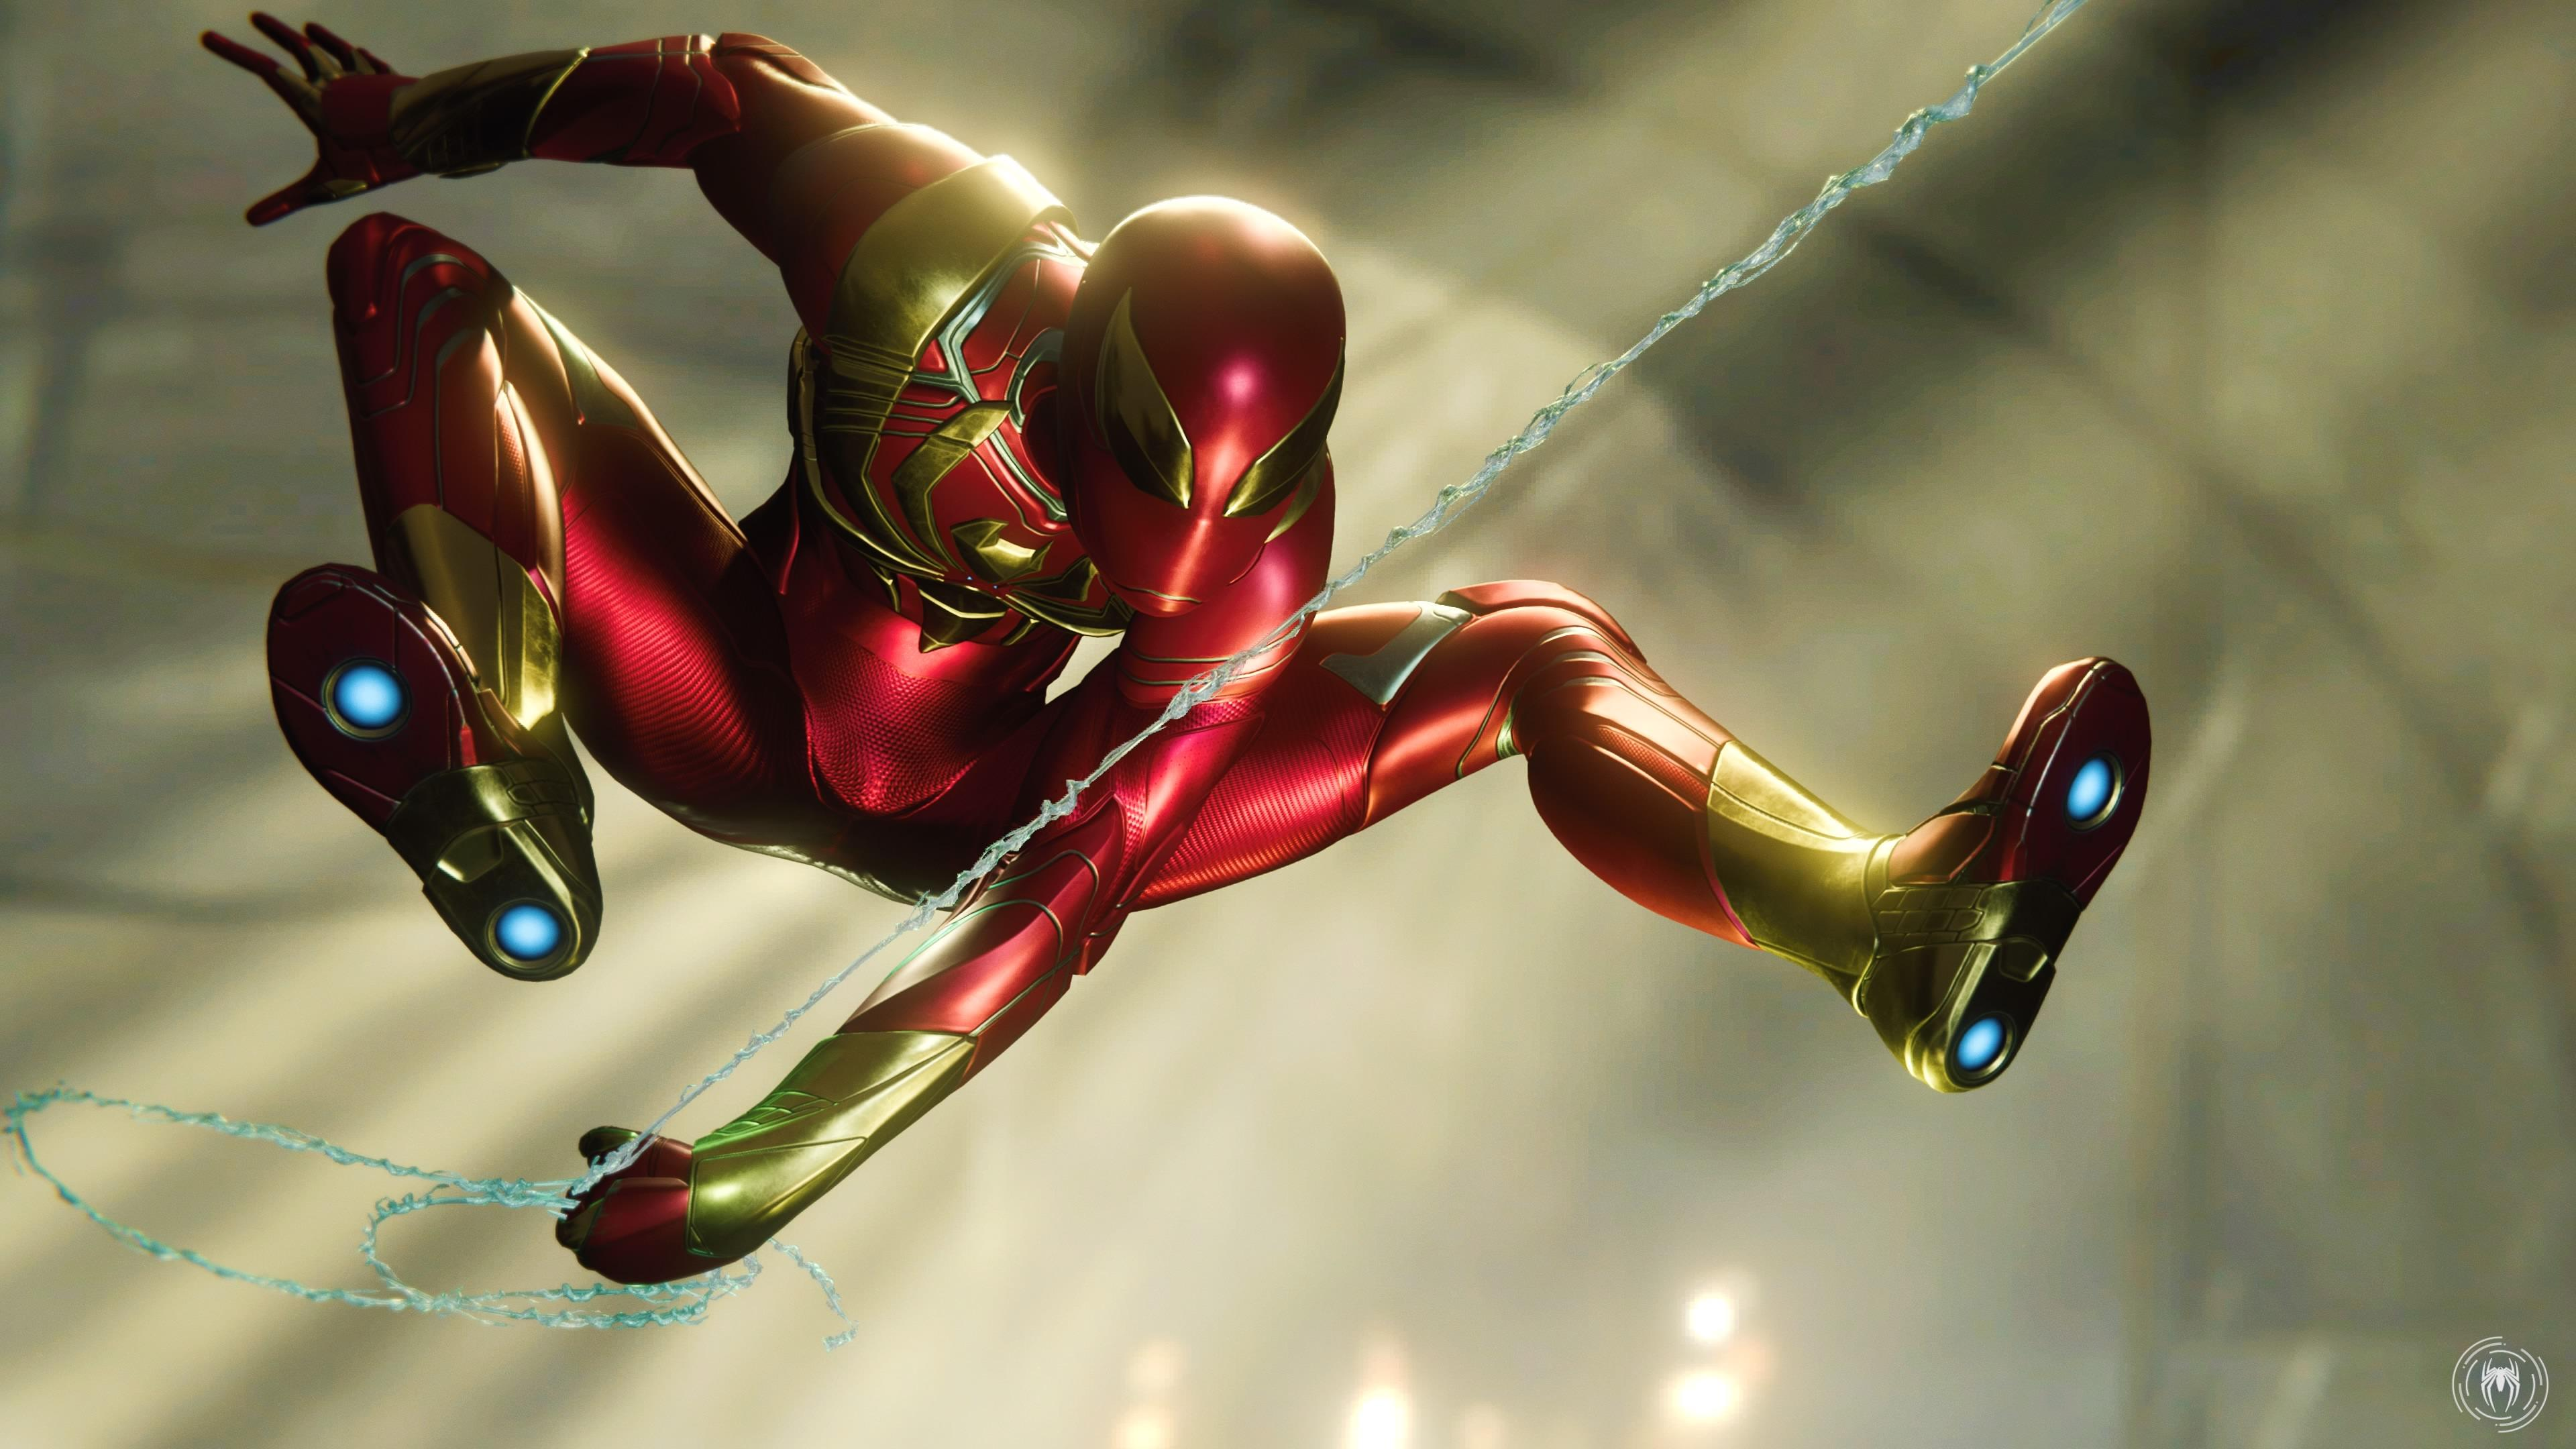 Spider man wallpapers 4k for your phone and desktop screen - Spiderman and ironman wallpaper ...